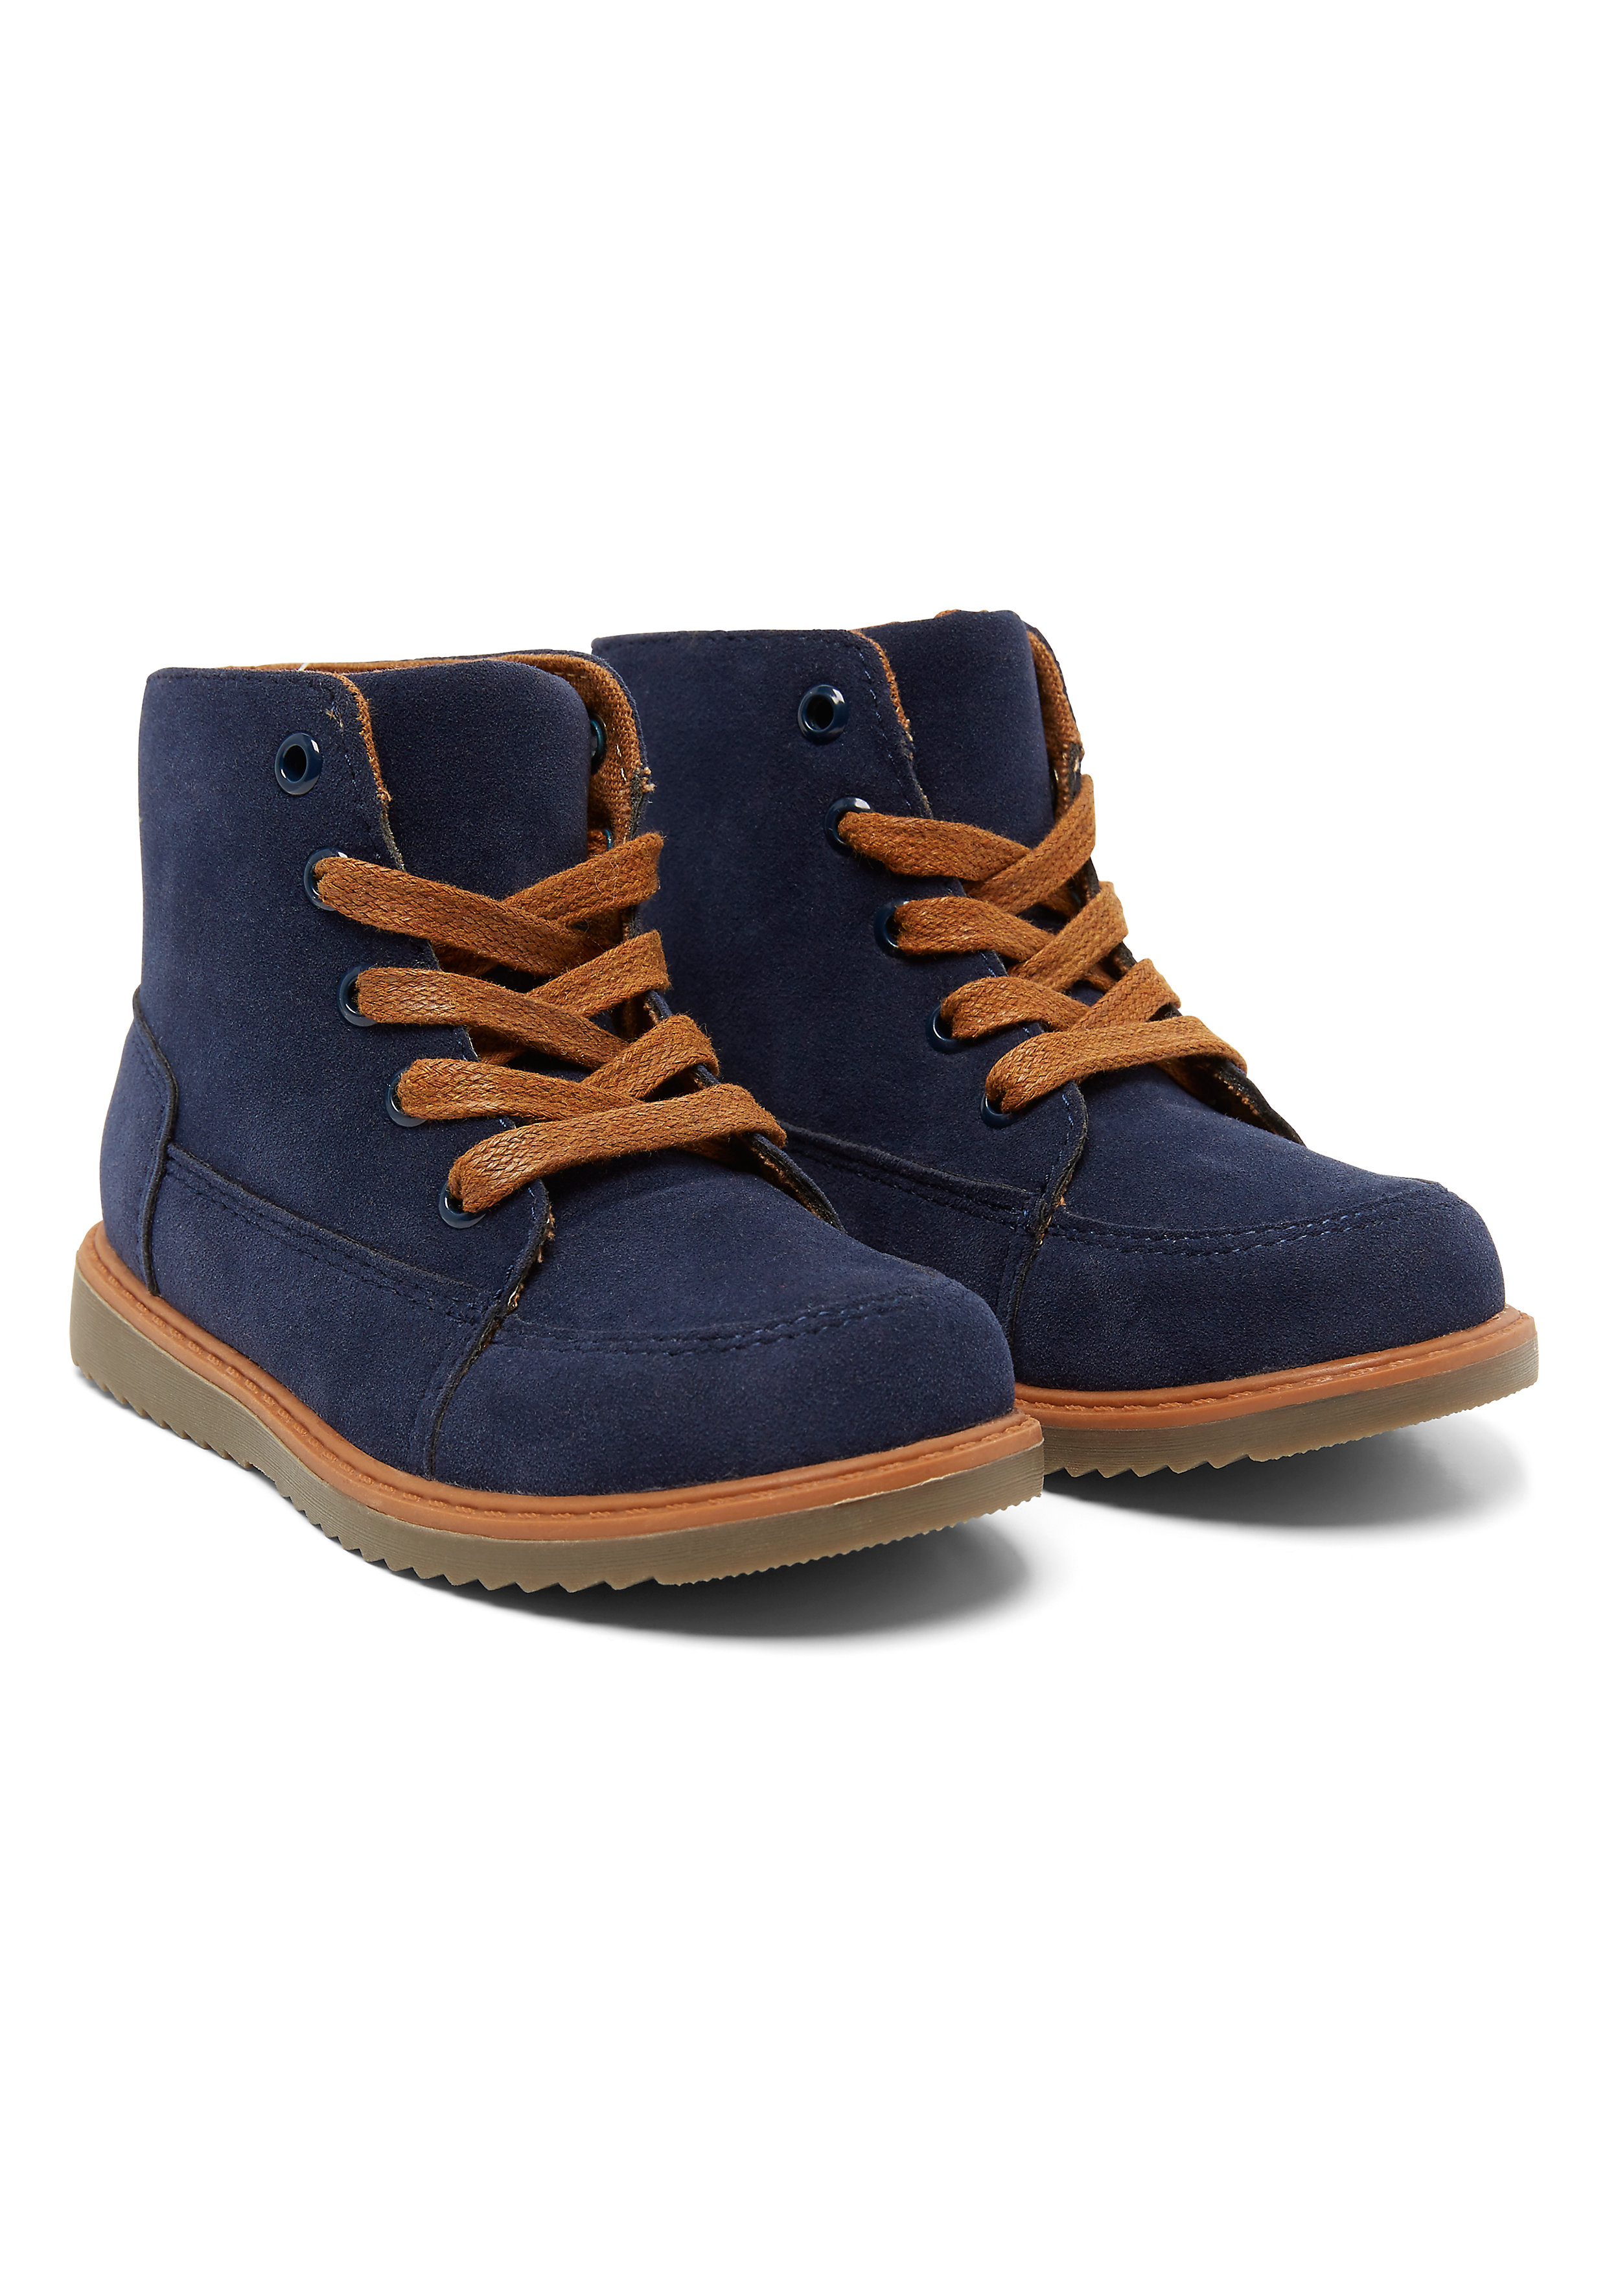 Mothercare   Boys Worker Boots - Navy